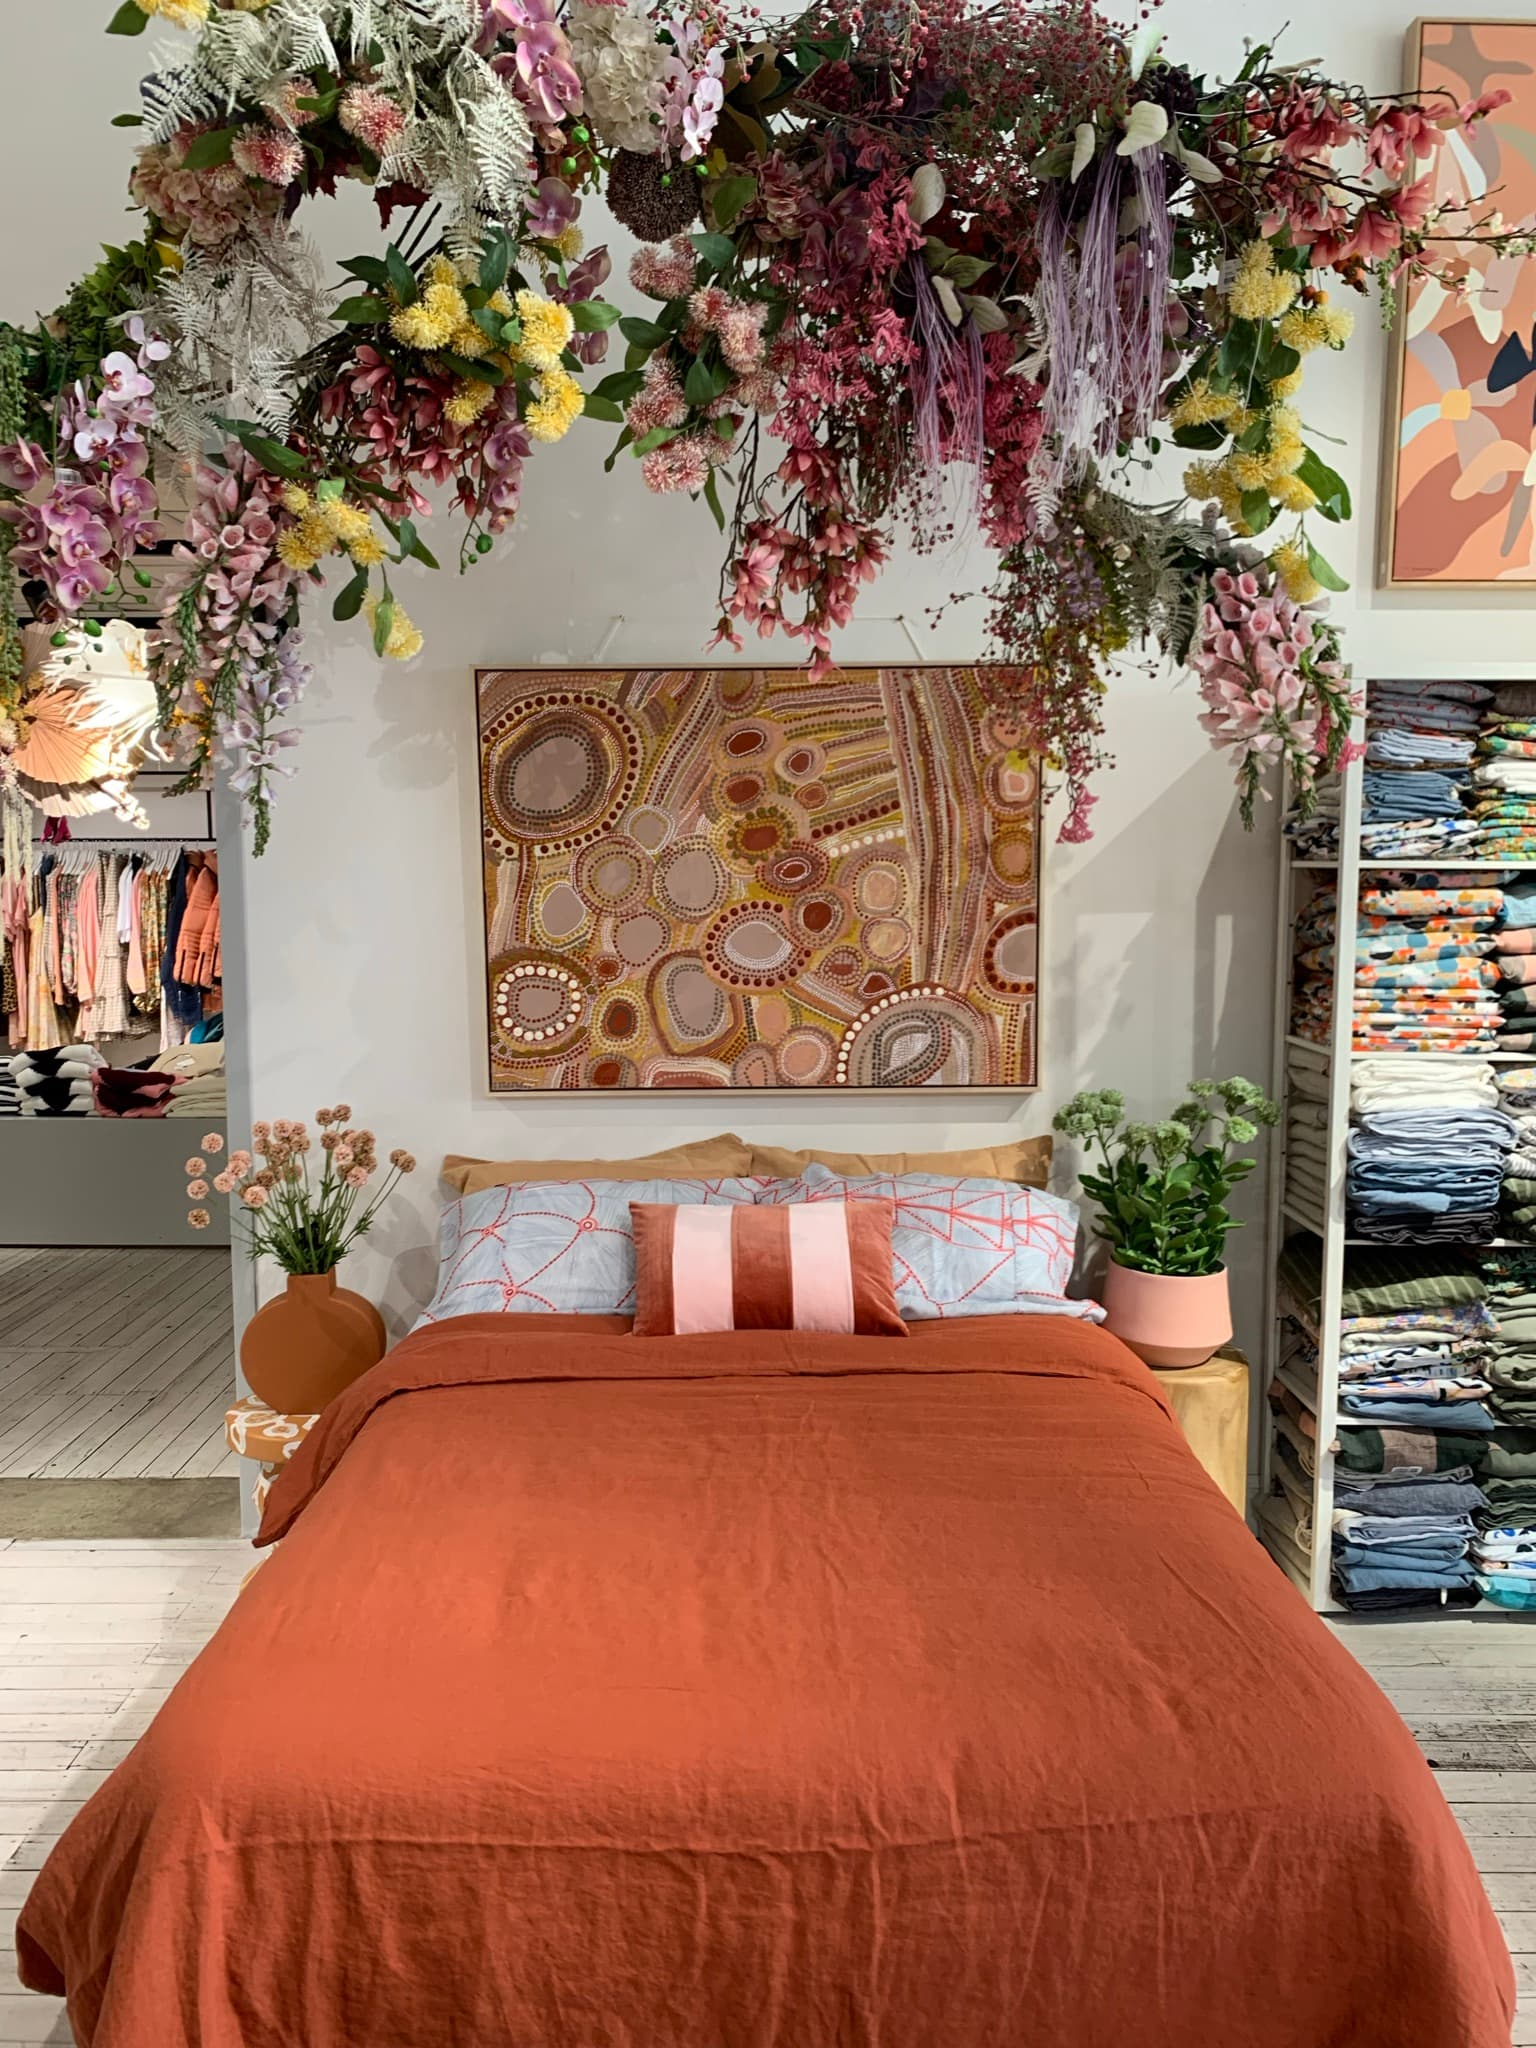 bed with orange bedspread and flowers above